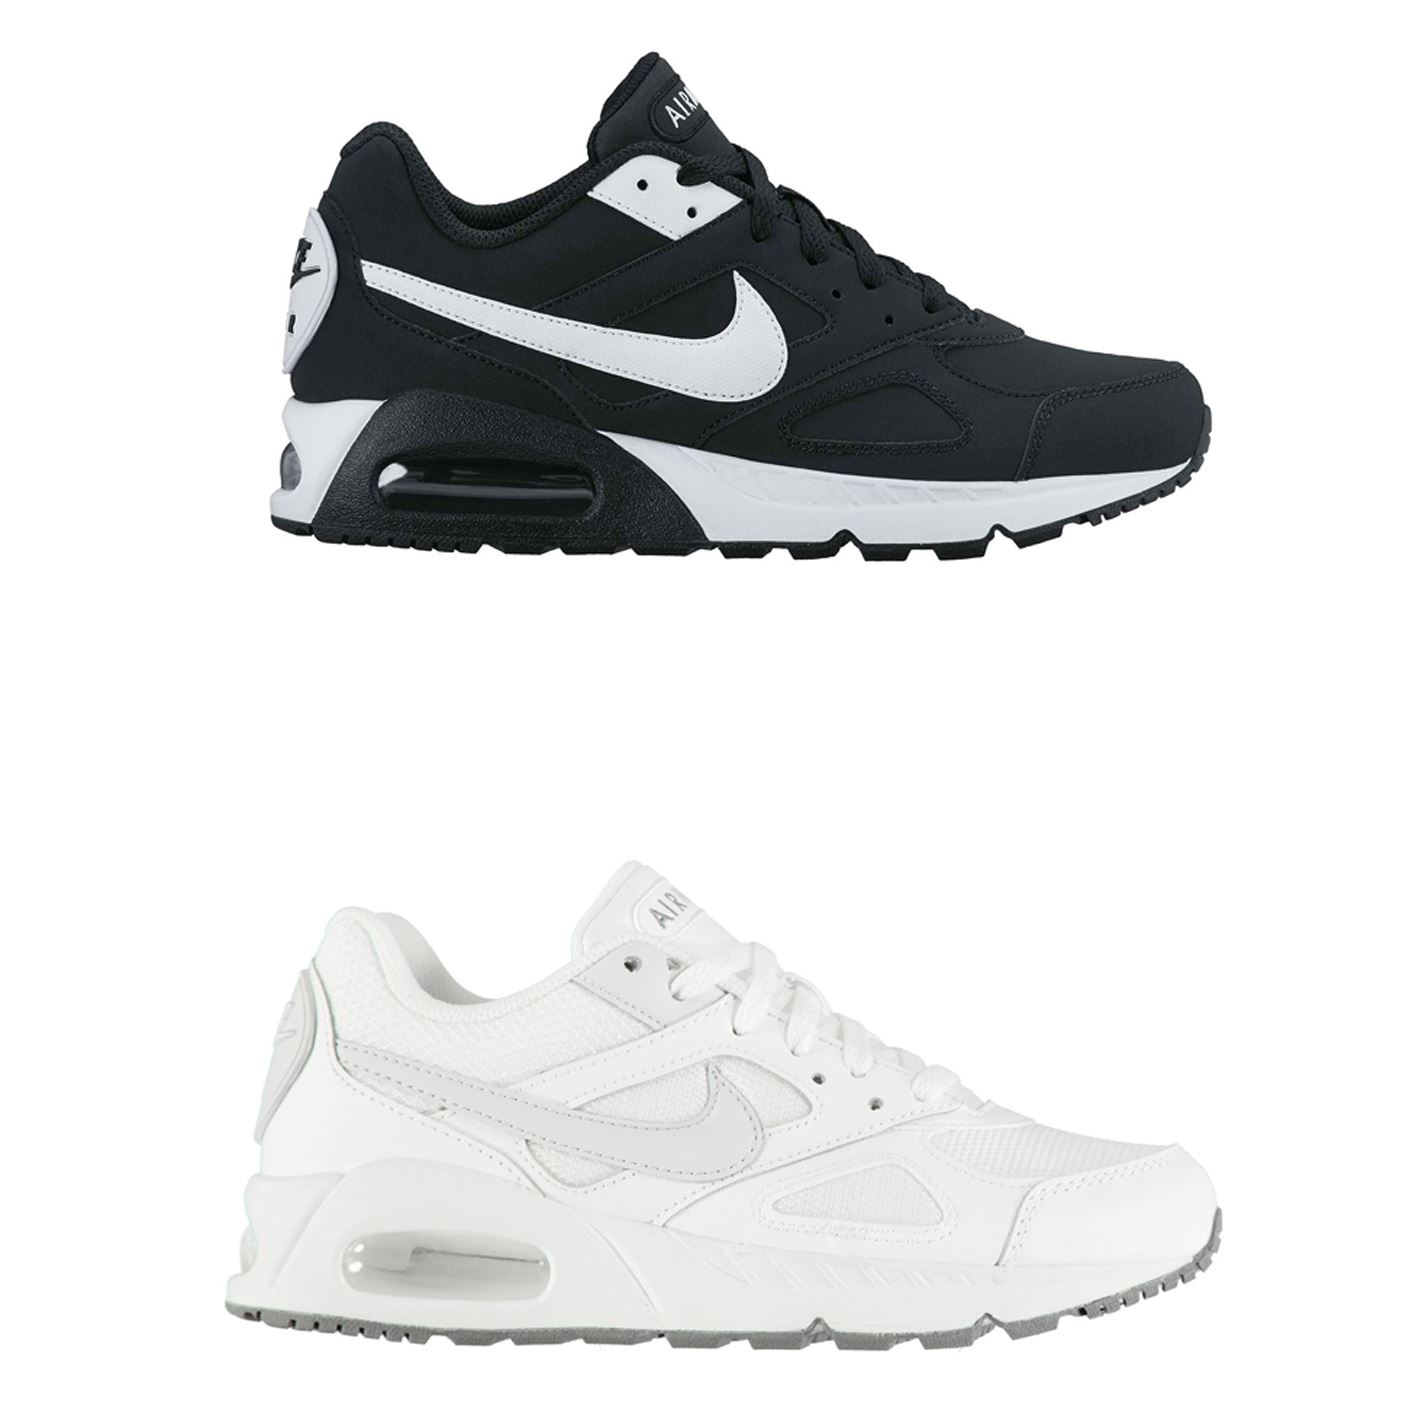 Details about Nike Air Max Ivo Training Shoes Womens Fitness Gym Workout Trainers Sneakers